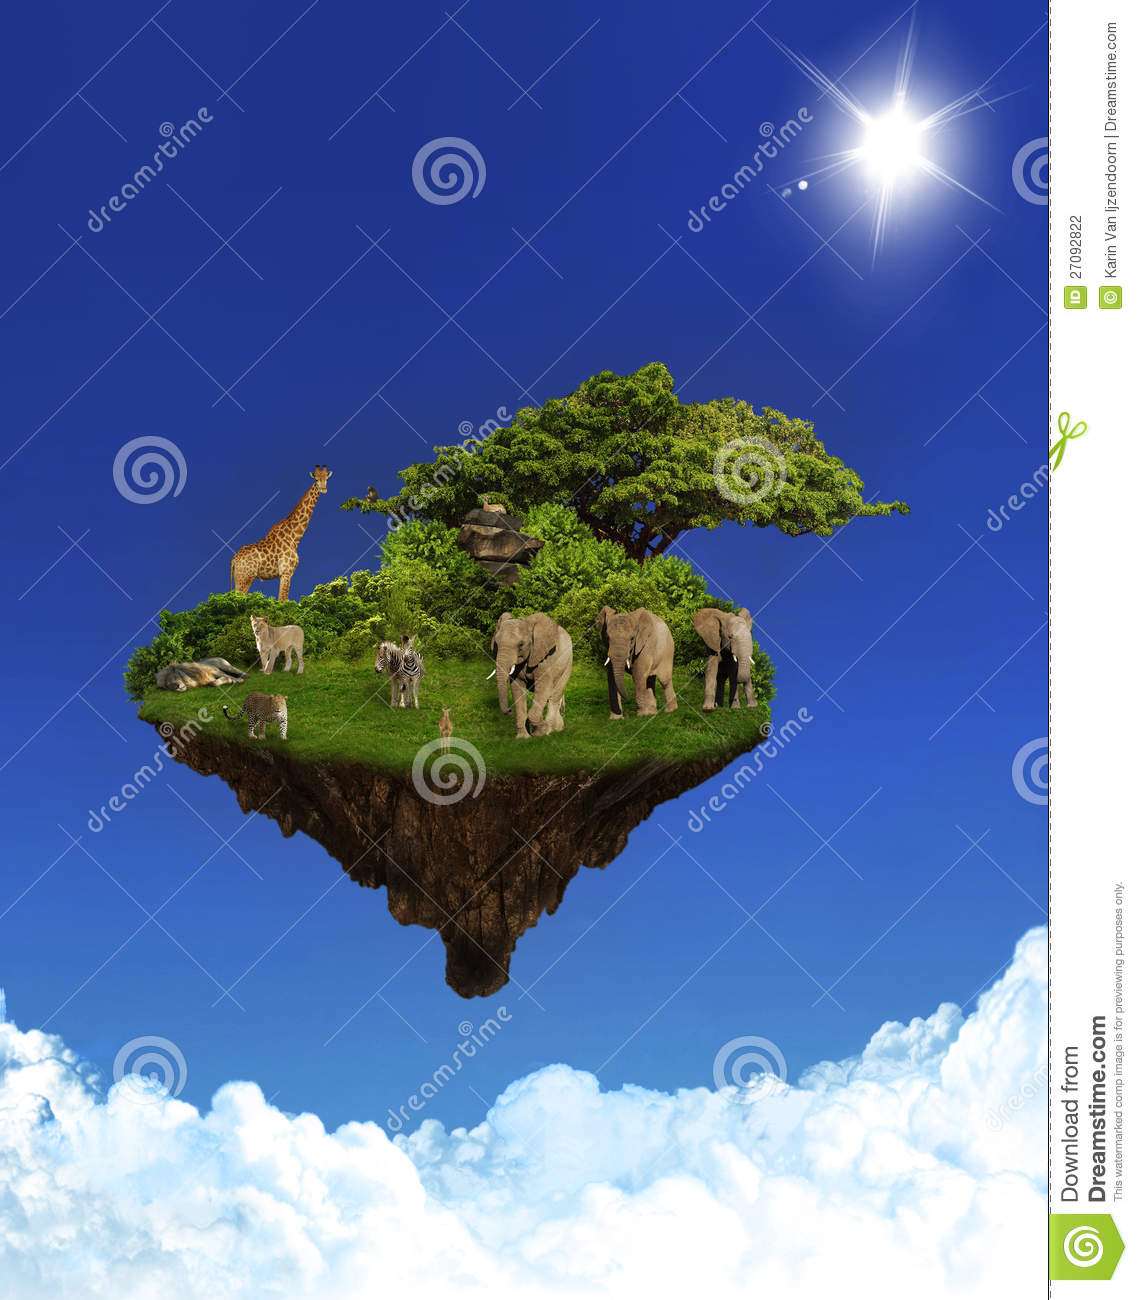 Floating Island With Animals Stock Photo Image 27092822